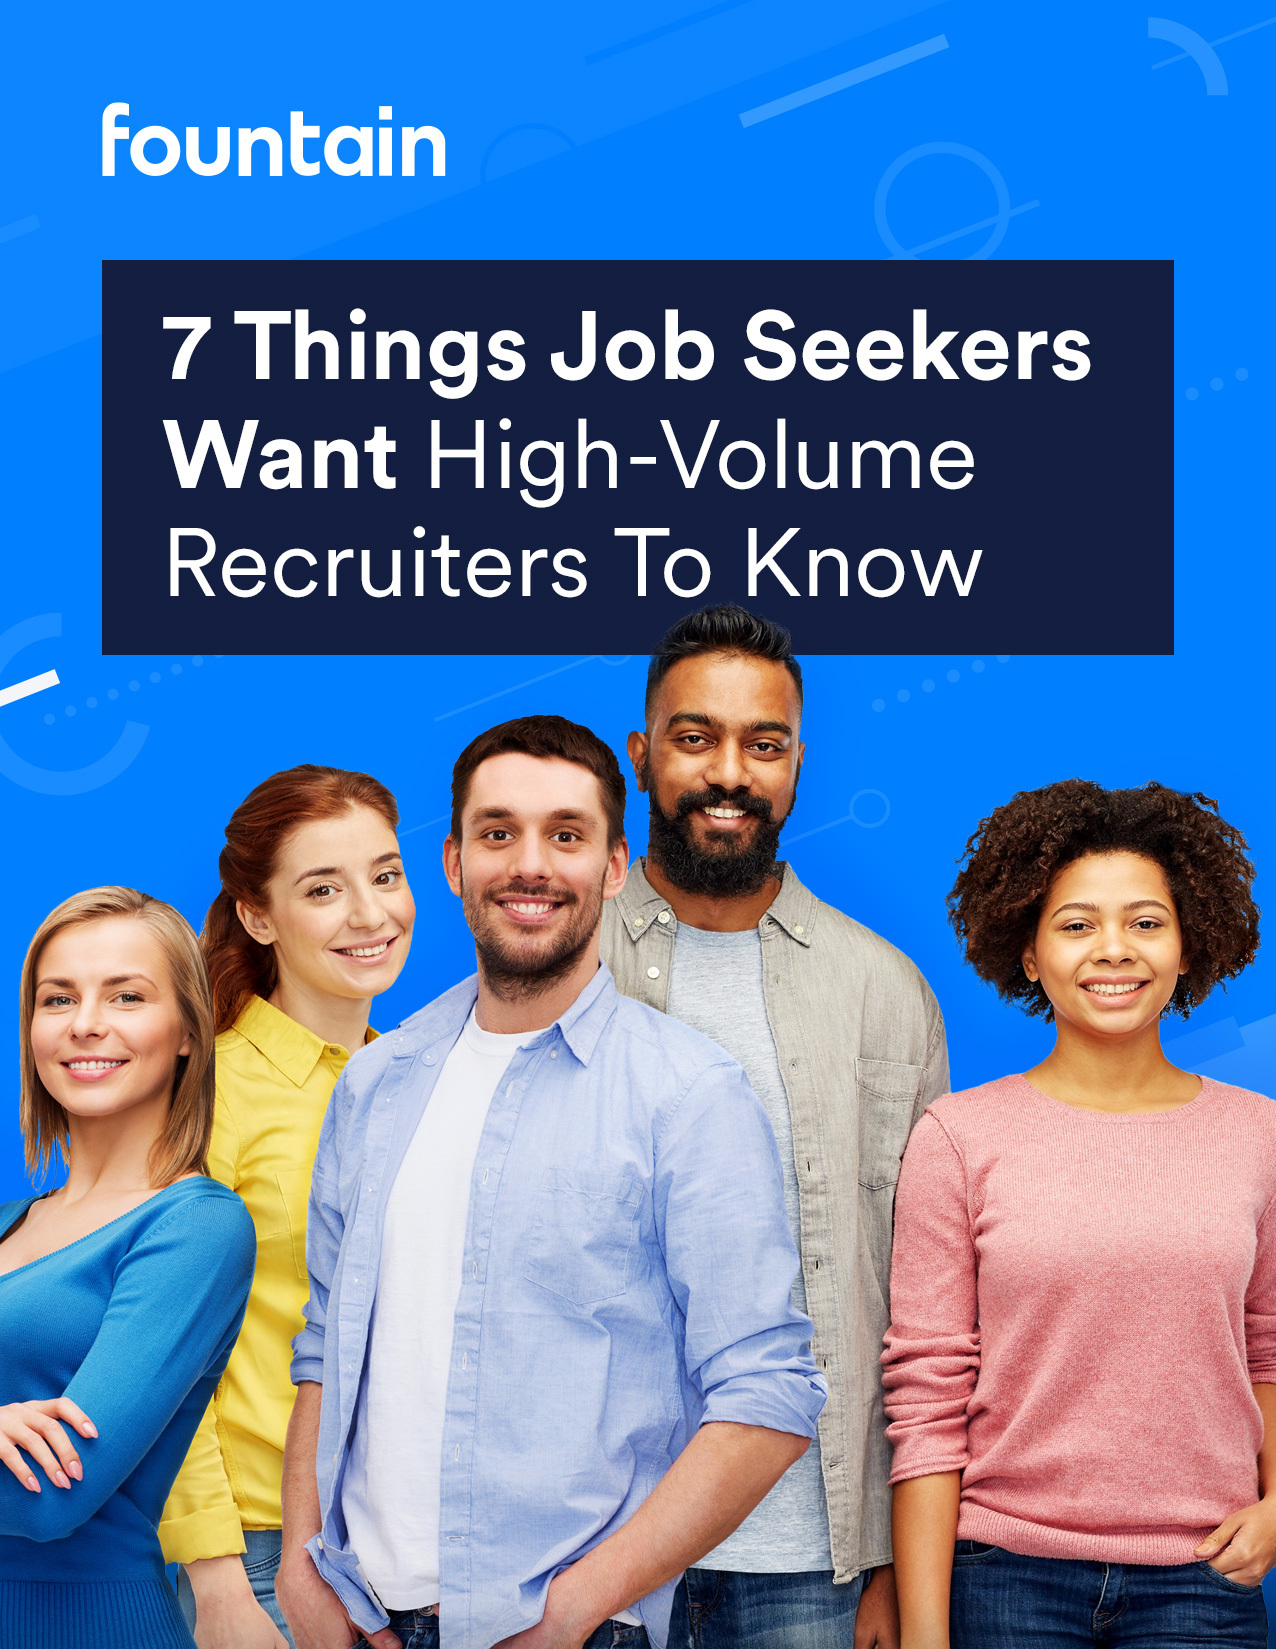 7 Things Job Seekers Want High-Volume Hiring Managers To Know